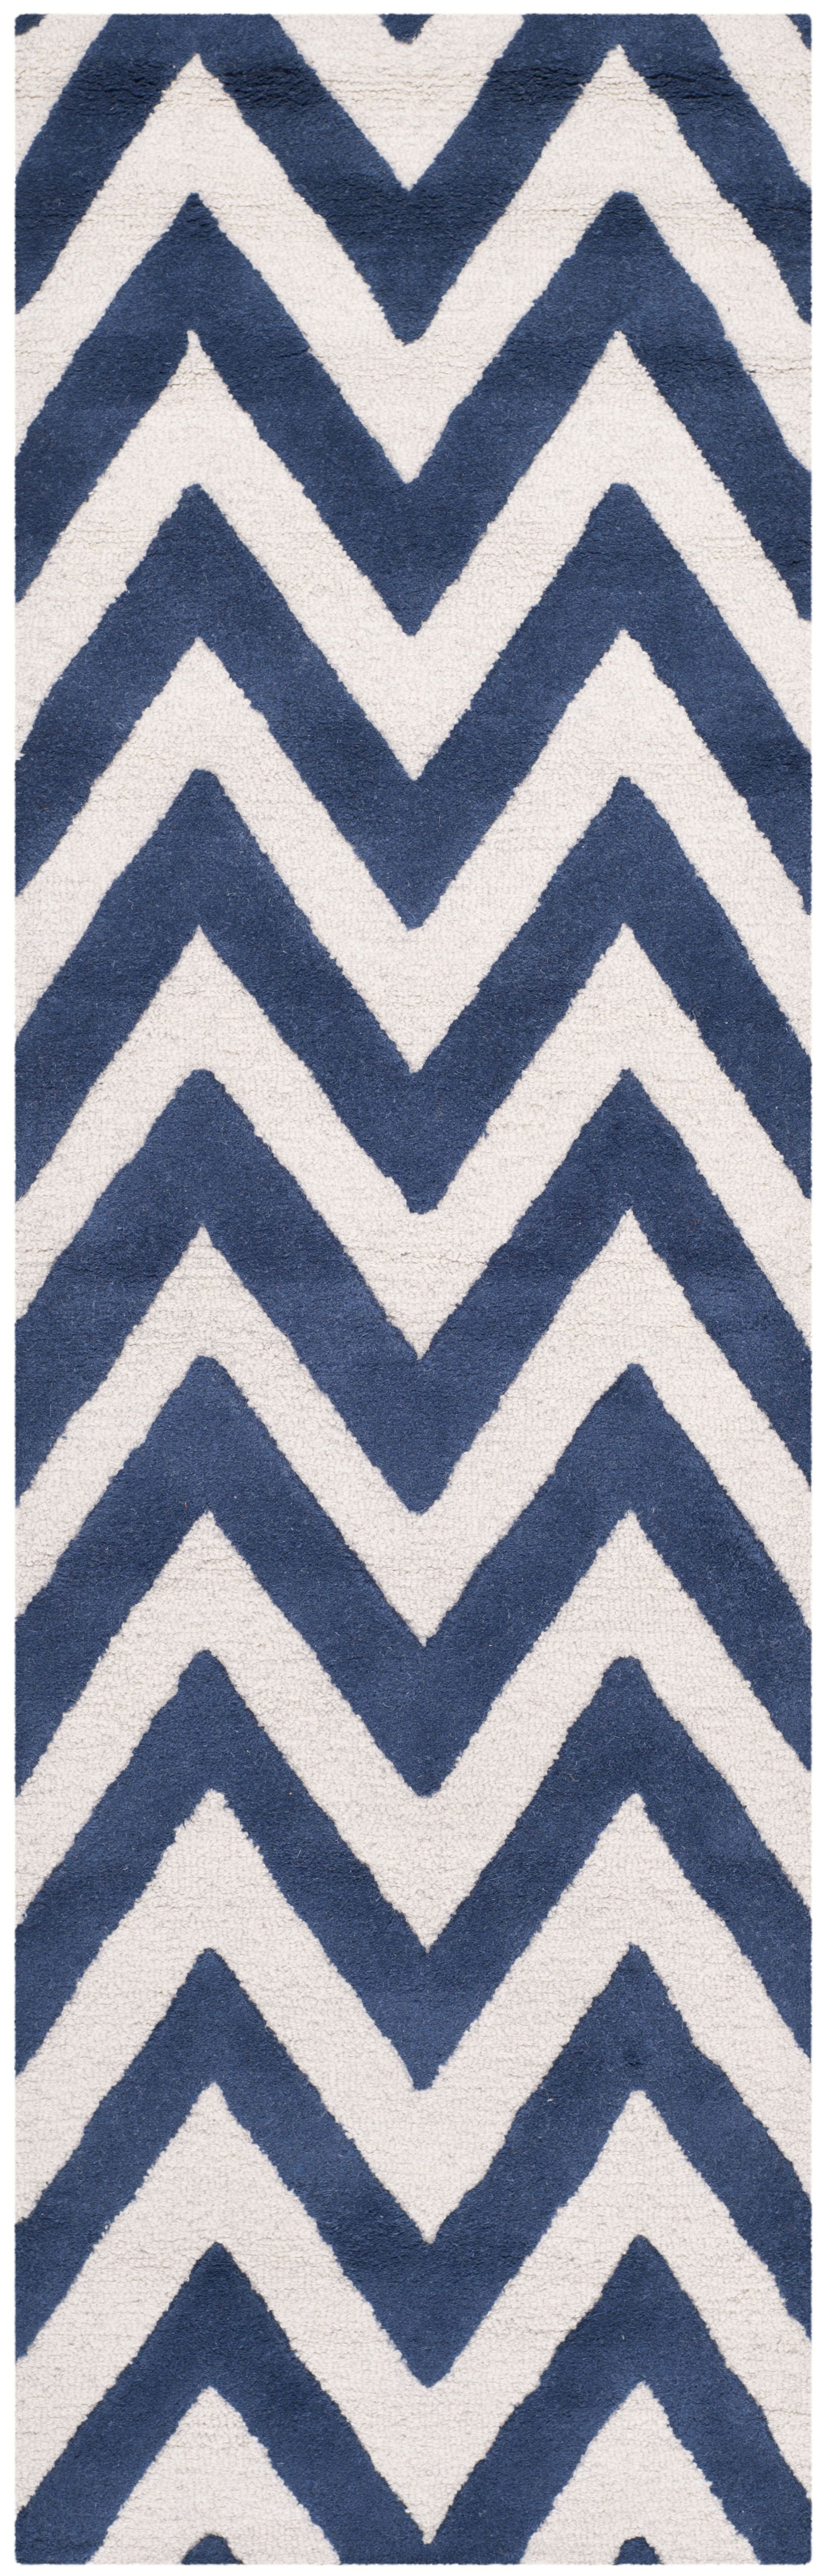 Hand-Tufted Wool Navy/Ivory Area Rug Rug Size: Runner 2'6